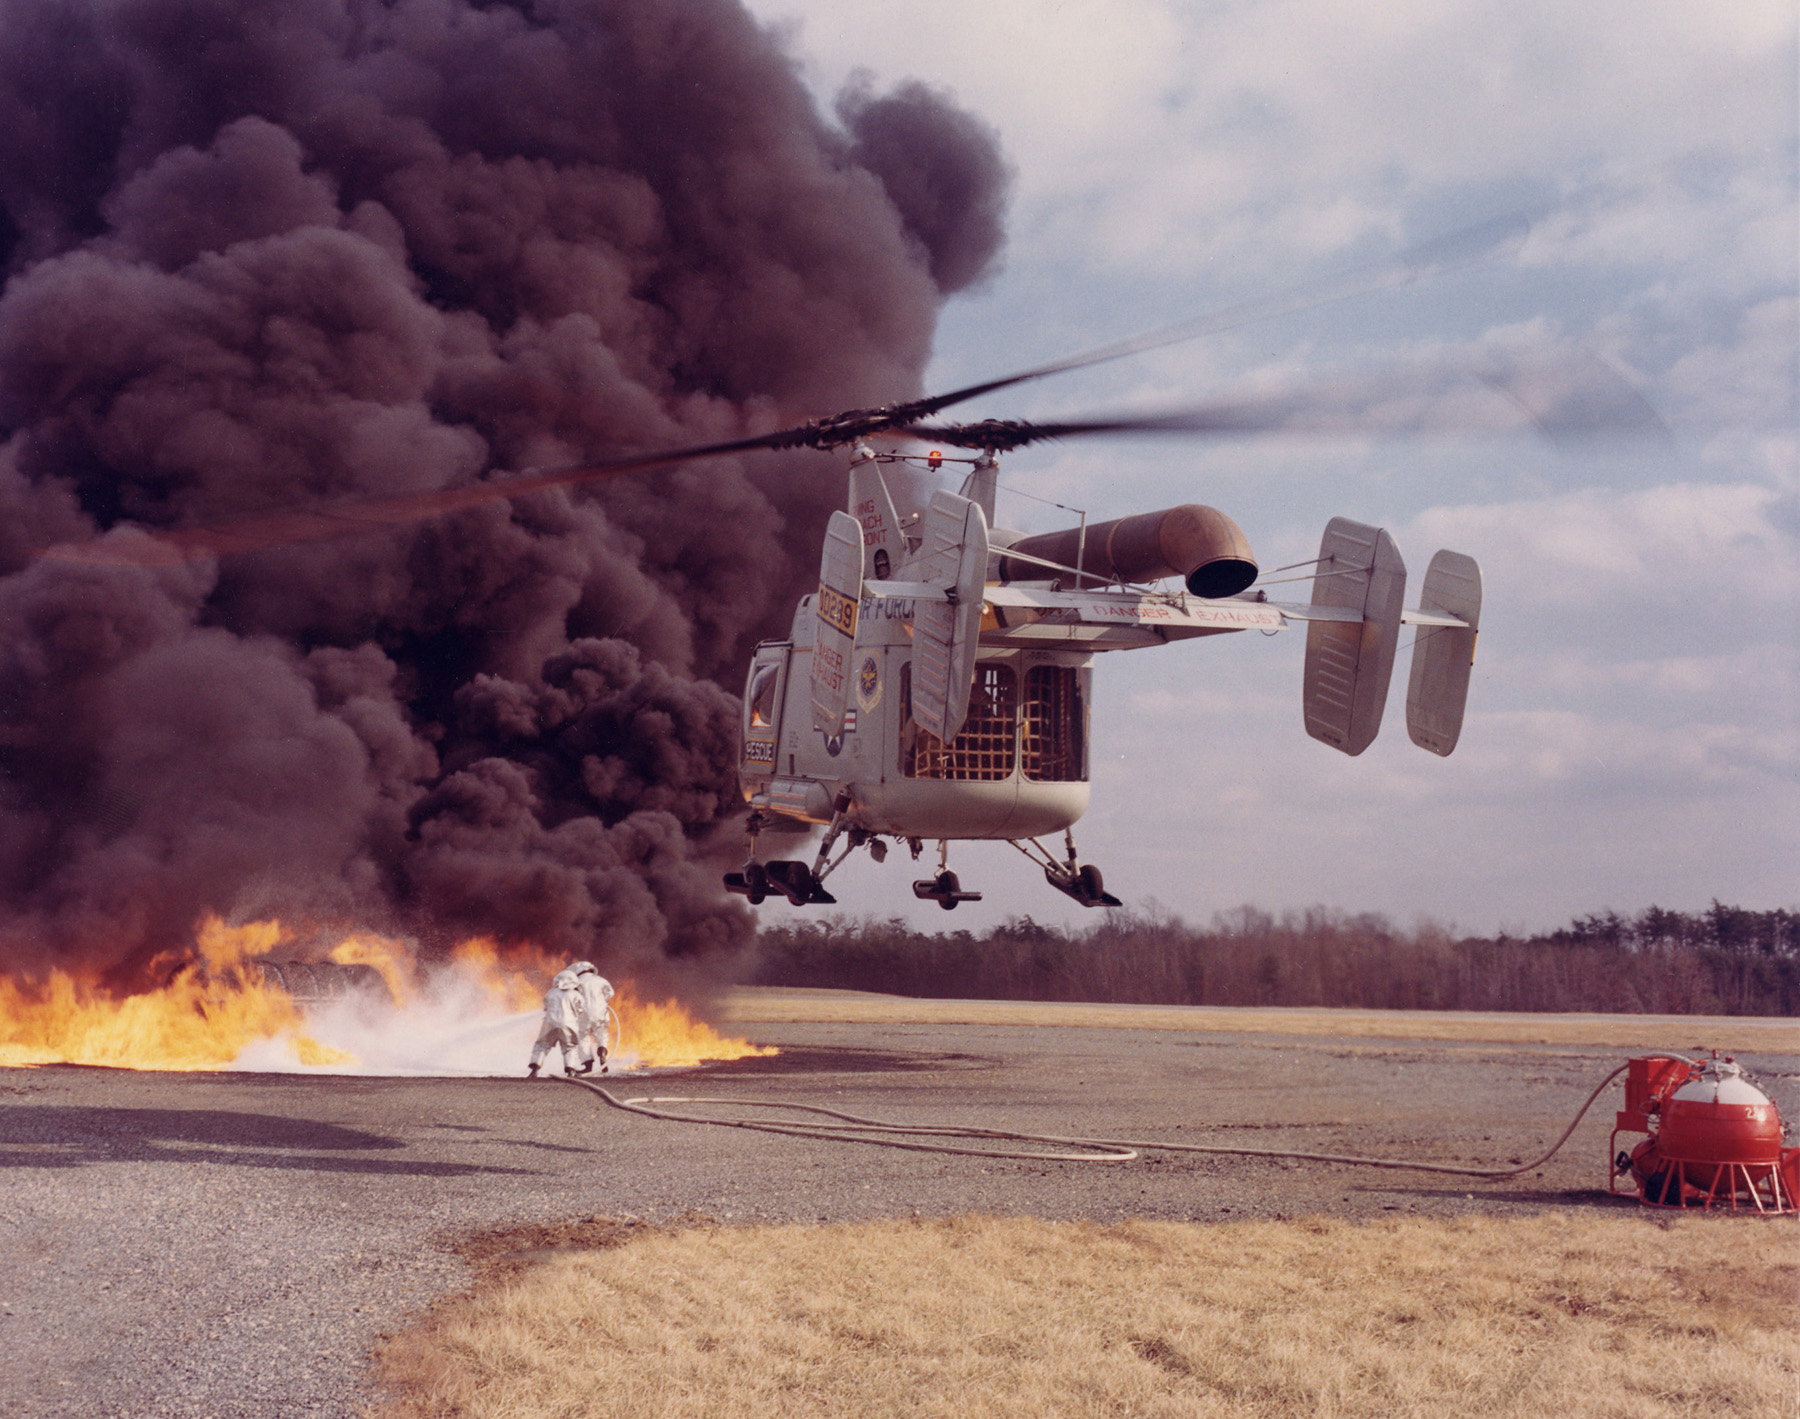 https://upload.wikimedia.org/wikipedia/commons/5/53/HH-43B_Huskie_during_a_firefighting_exercise_c1960s.jpg